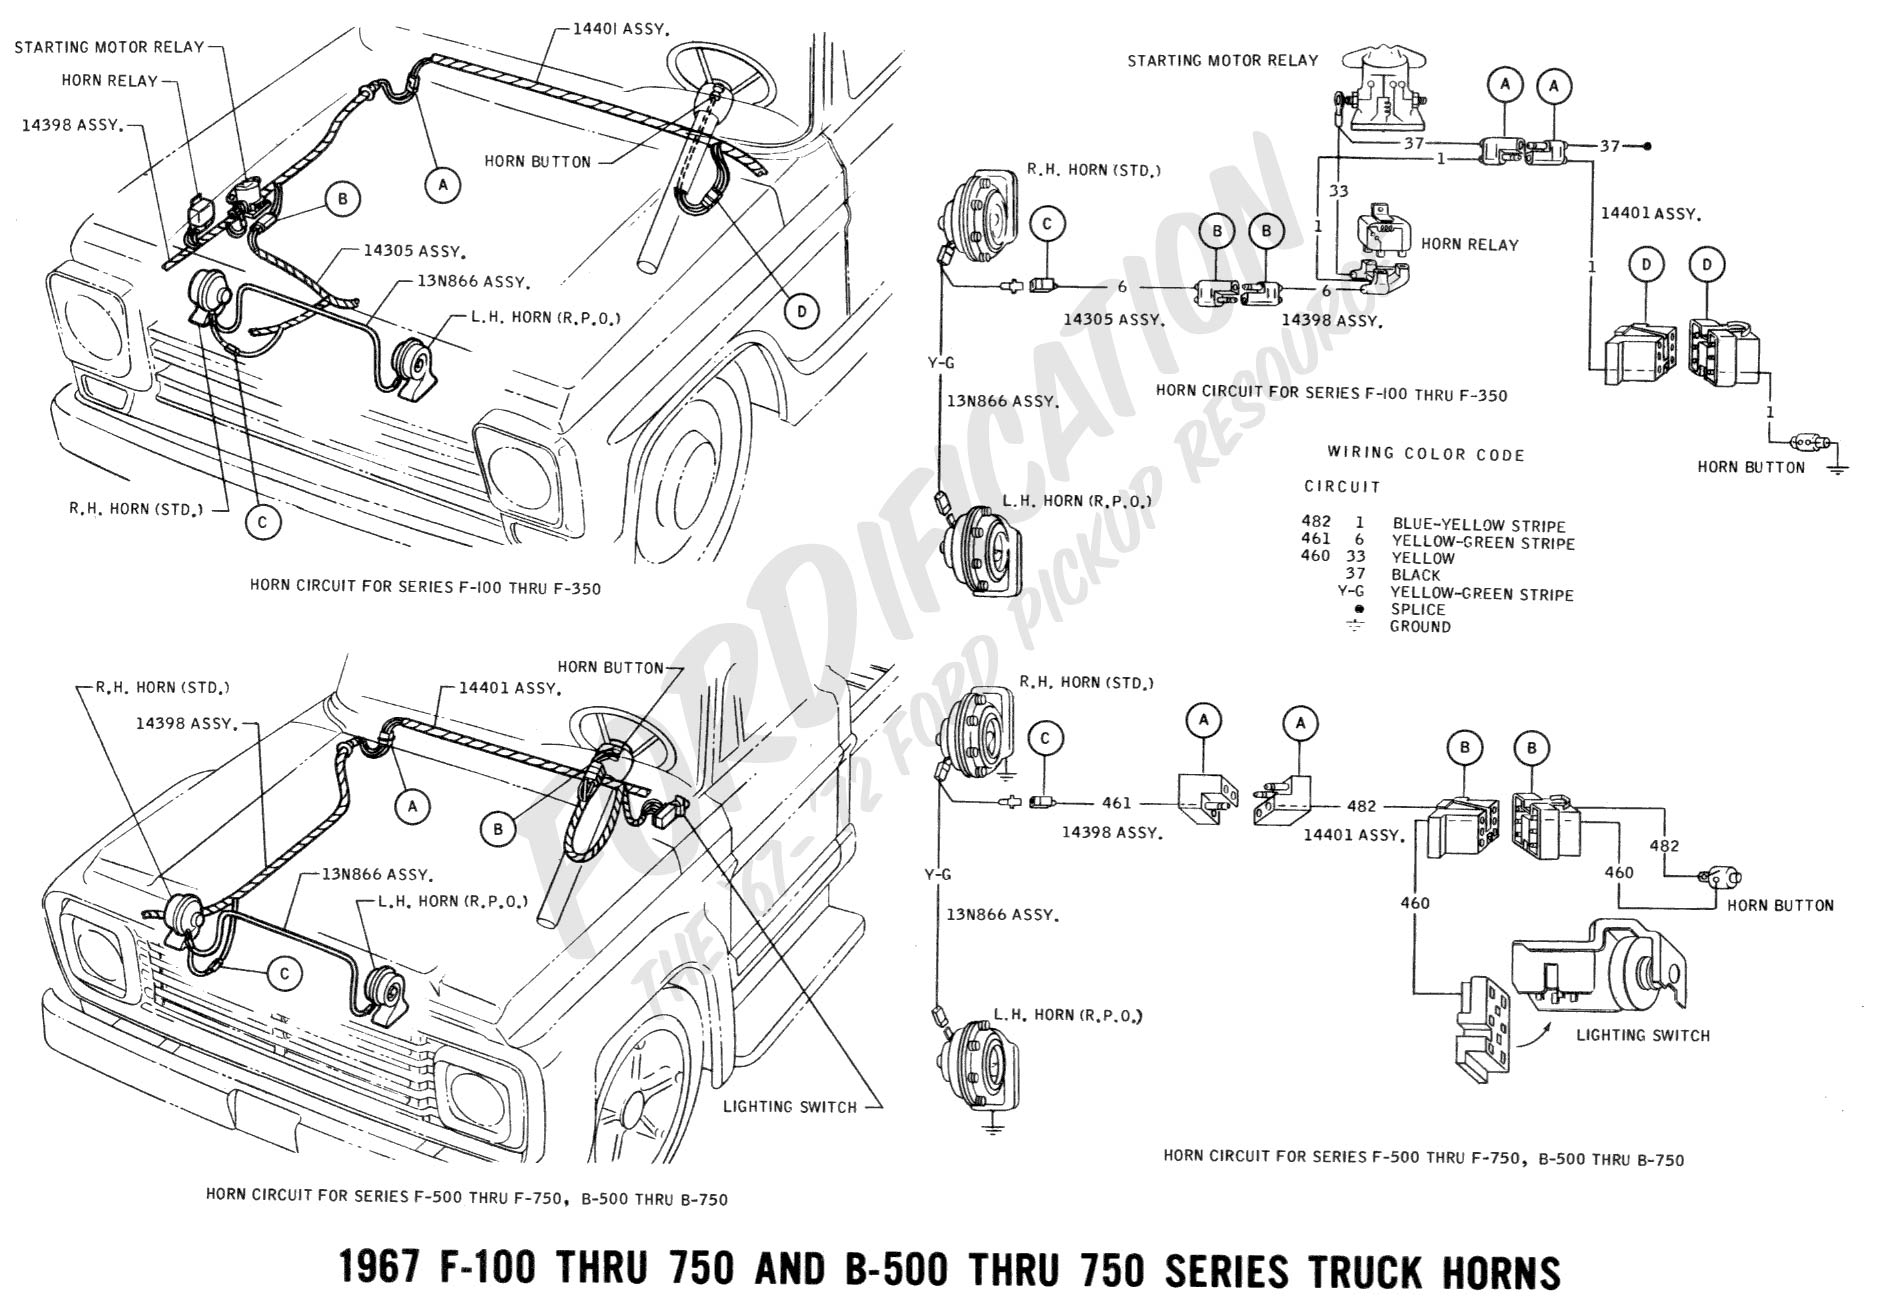 Bypassing The   Gauge Question About The Mad Electrical Method additionally Forum posts additionally 1334115 Steering Column Assembly as well Chevy Hei Distributor Wiring Diagram further 1966 Ford Mustang Dash Wiring Diagram. on 1965 ford mustang alternator wiring diagram